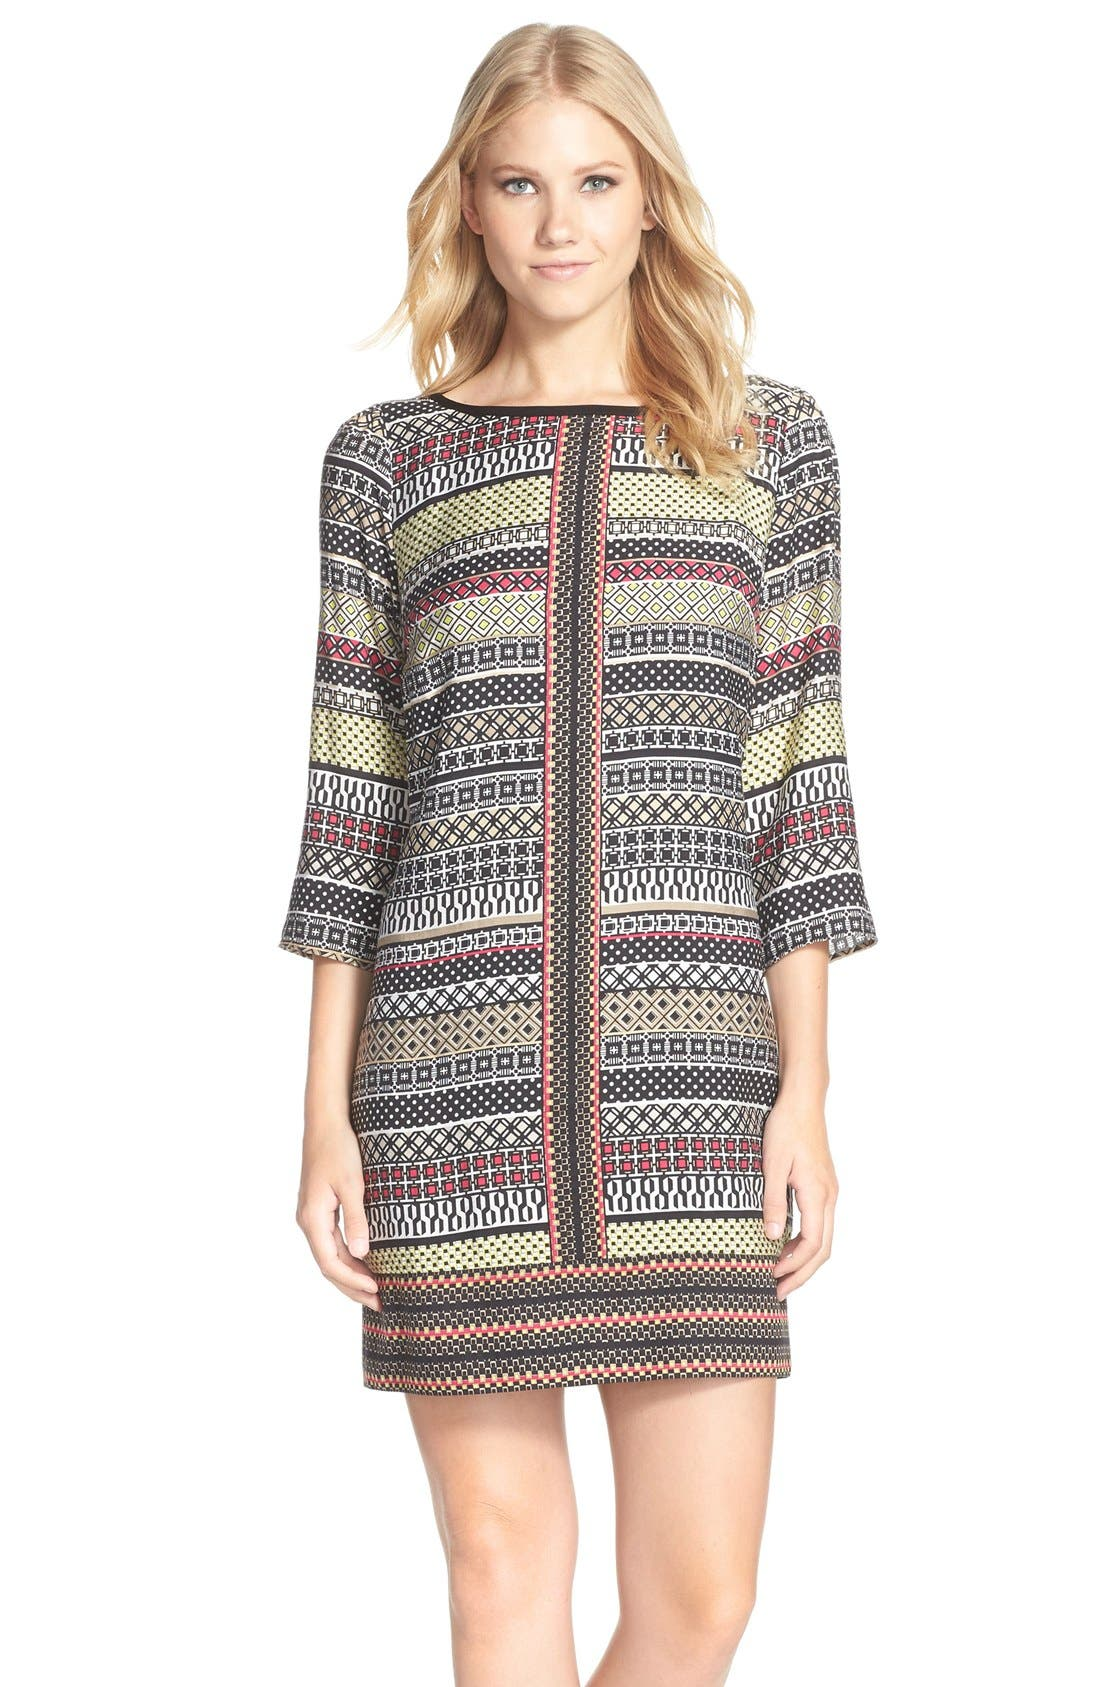 Alternate Image 1 Selected - Laundry by Shelli Segal Print Twill A-Line Dress (Regular & Petite)